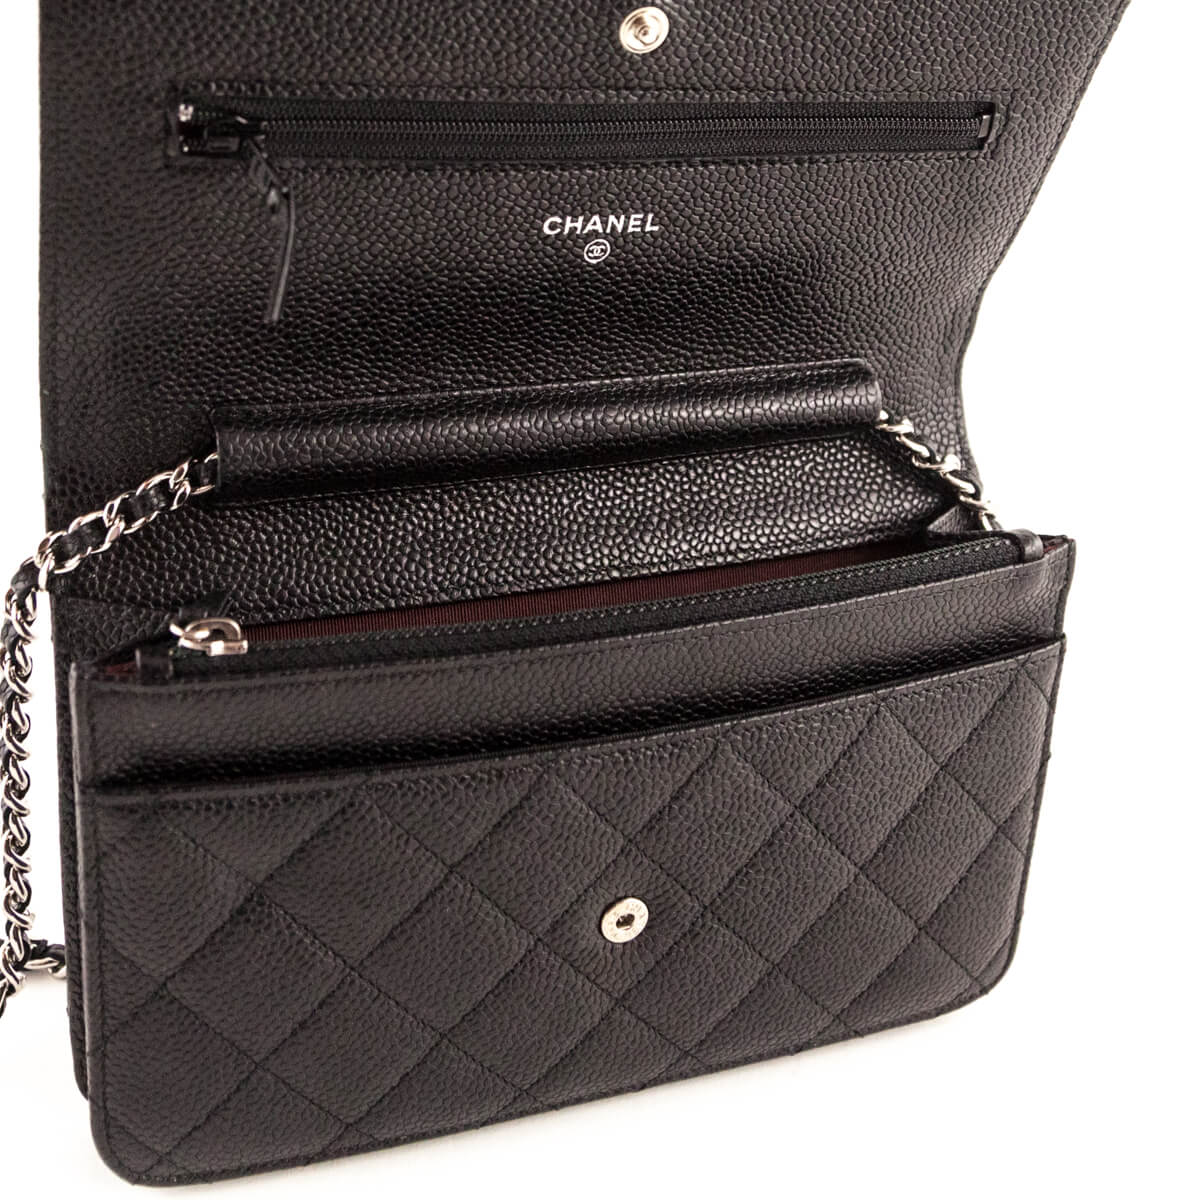 0cfcf90203a5e3 ... Chanel Black Caviar Wallet on Chain SHW - LOVE that BAG - Preowned  Authentic Designer Handbags ...